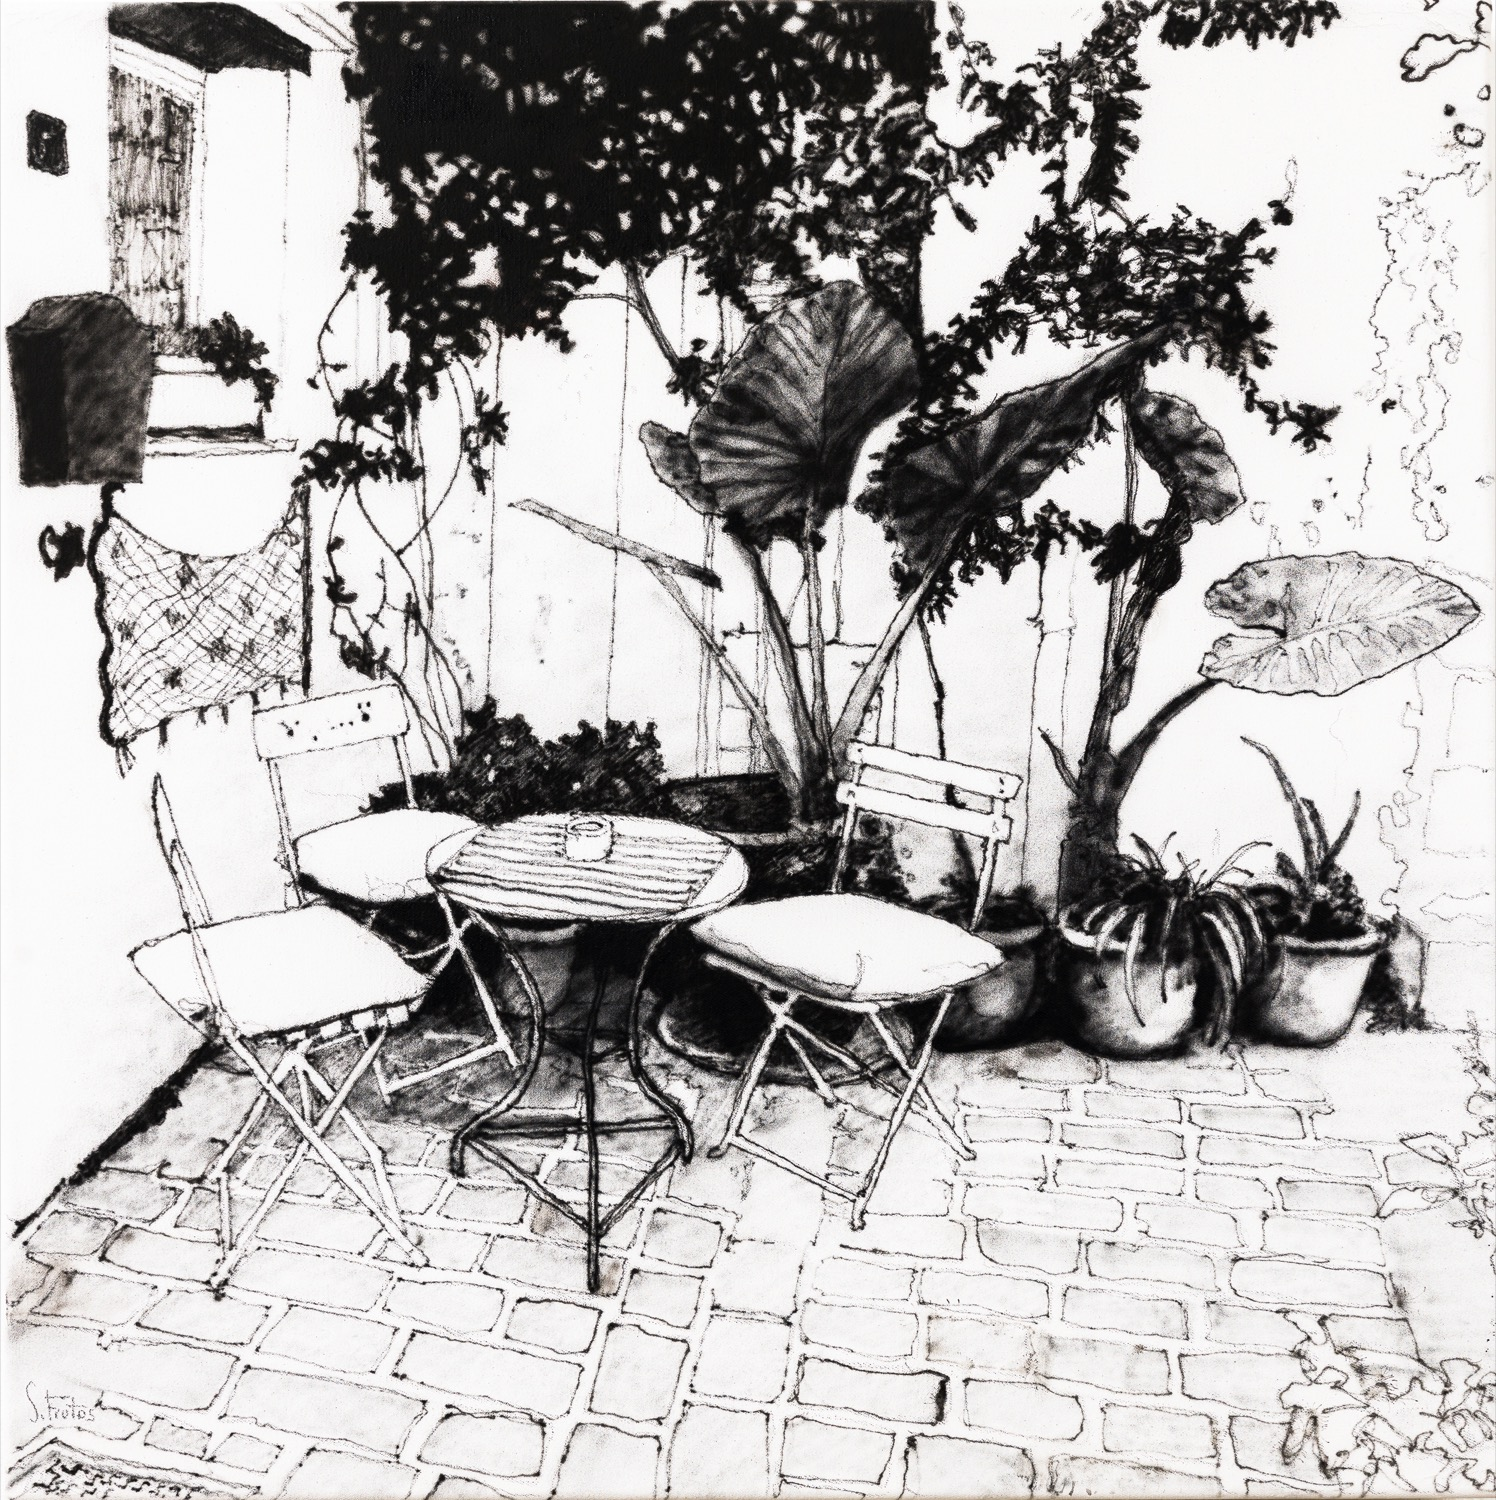 Chania, Crete. Ink on canvas, 50 x 50 cm, 2020